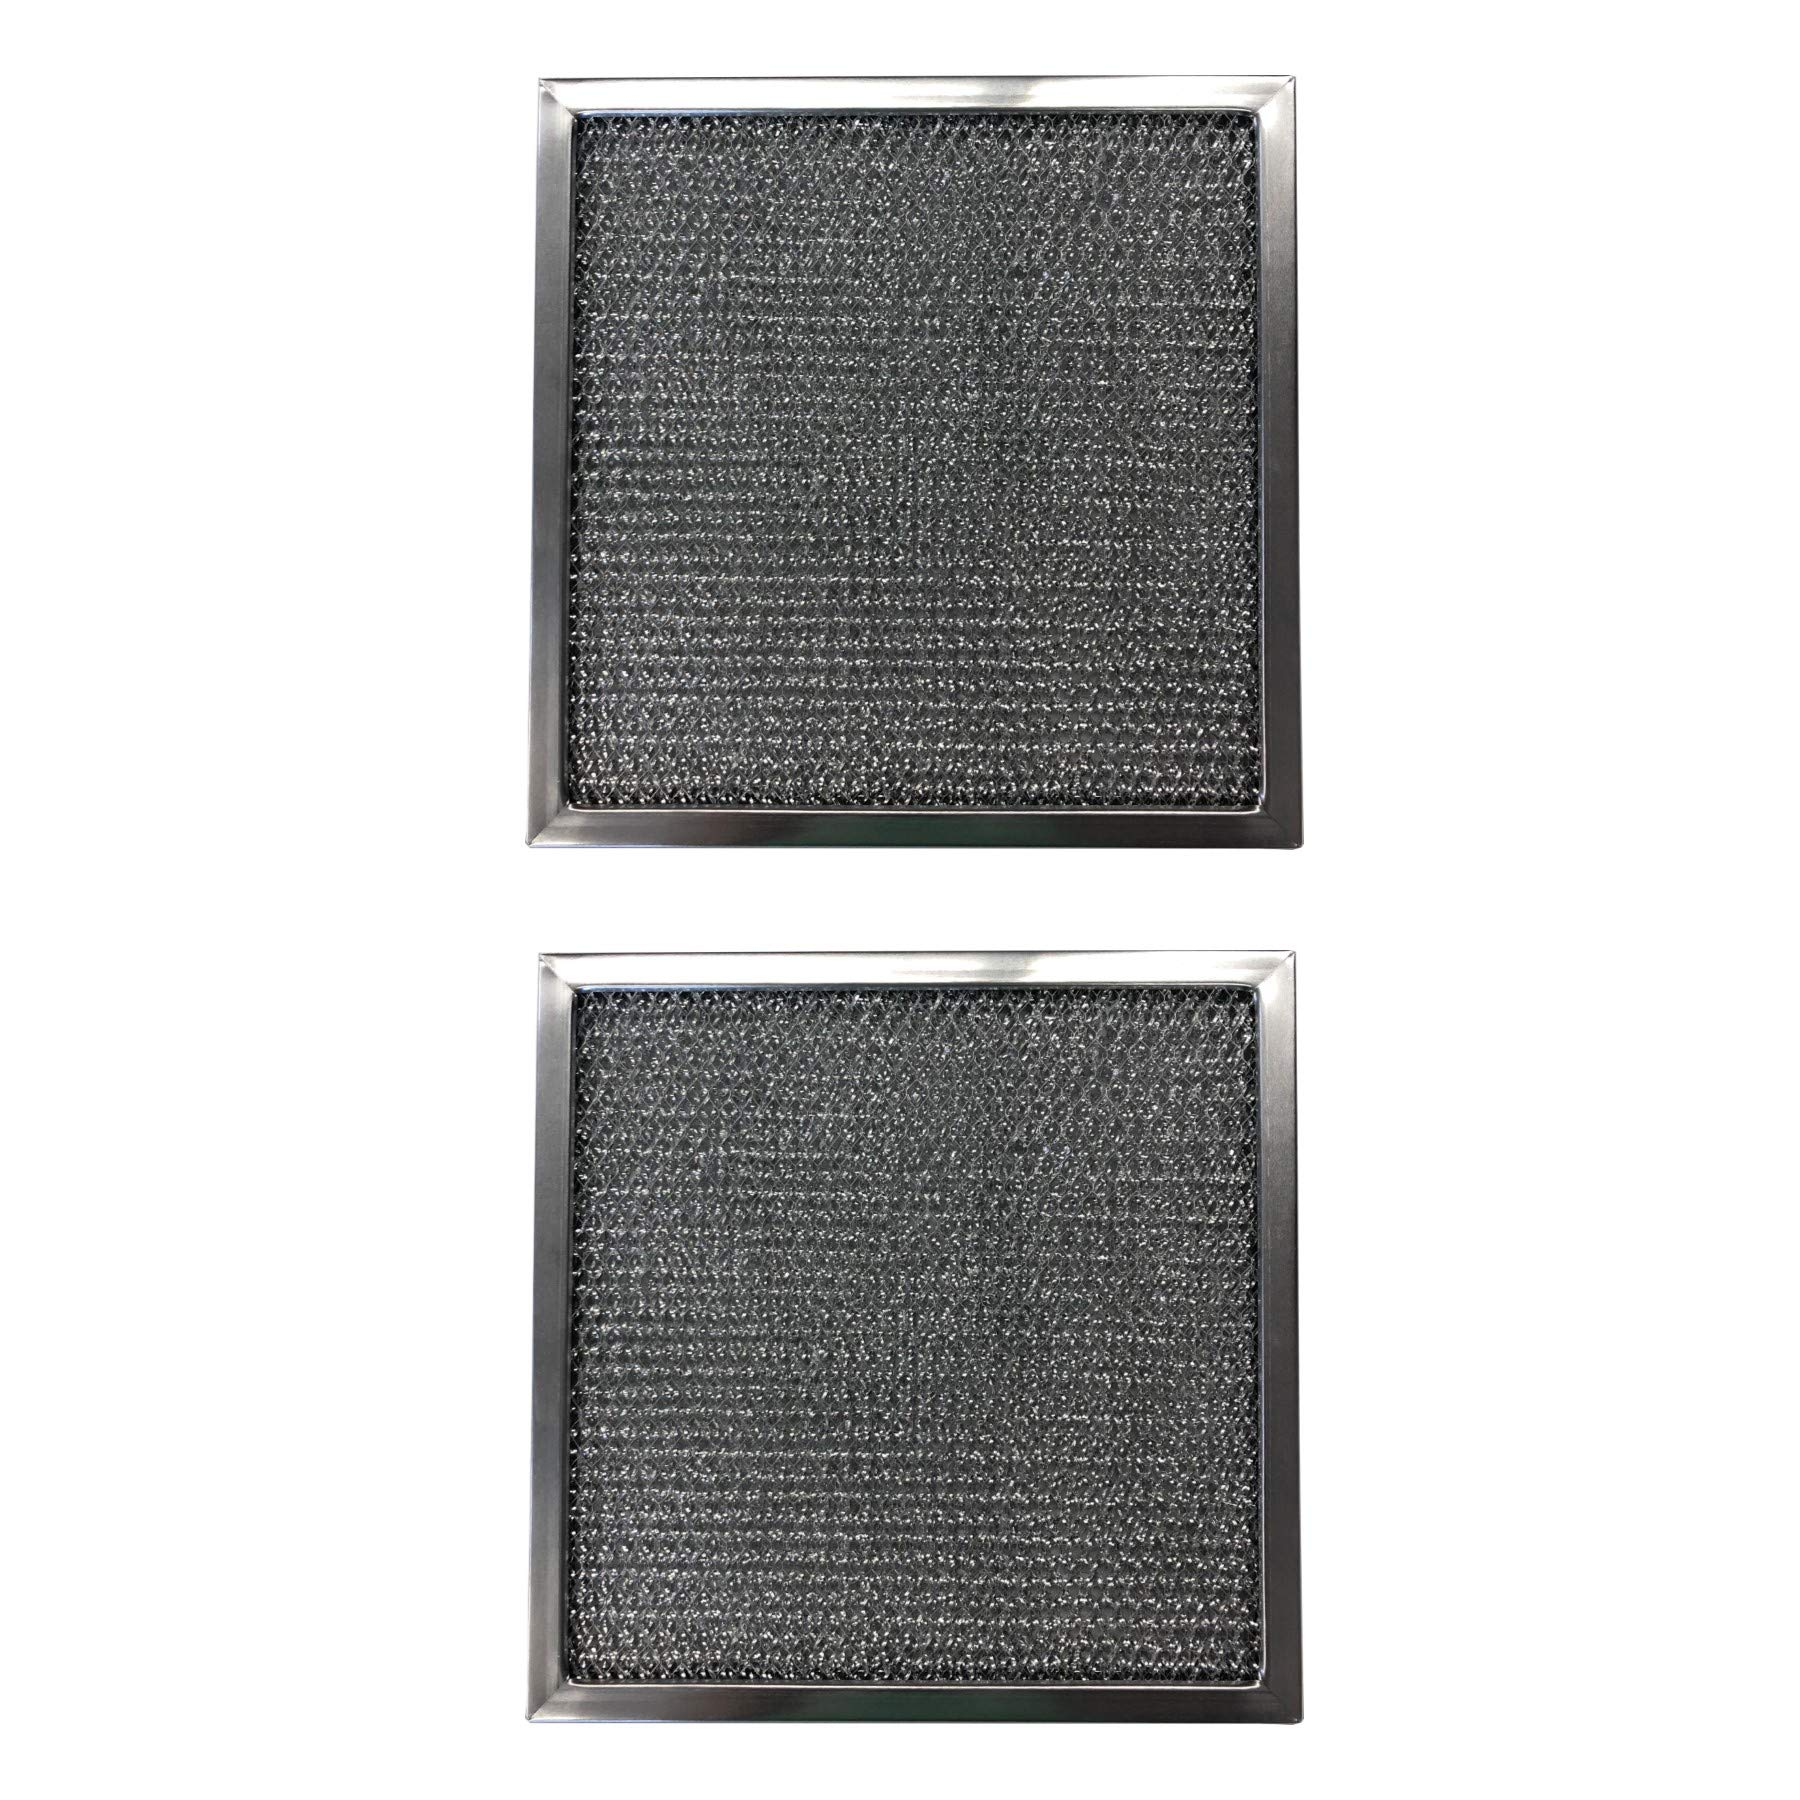 Replacement Aluminum Filters Compatible with Nutone 50829,G 8538,RHF1015  10 5/8 X 10 5/8 X 3/8 (2 P